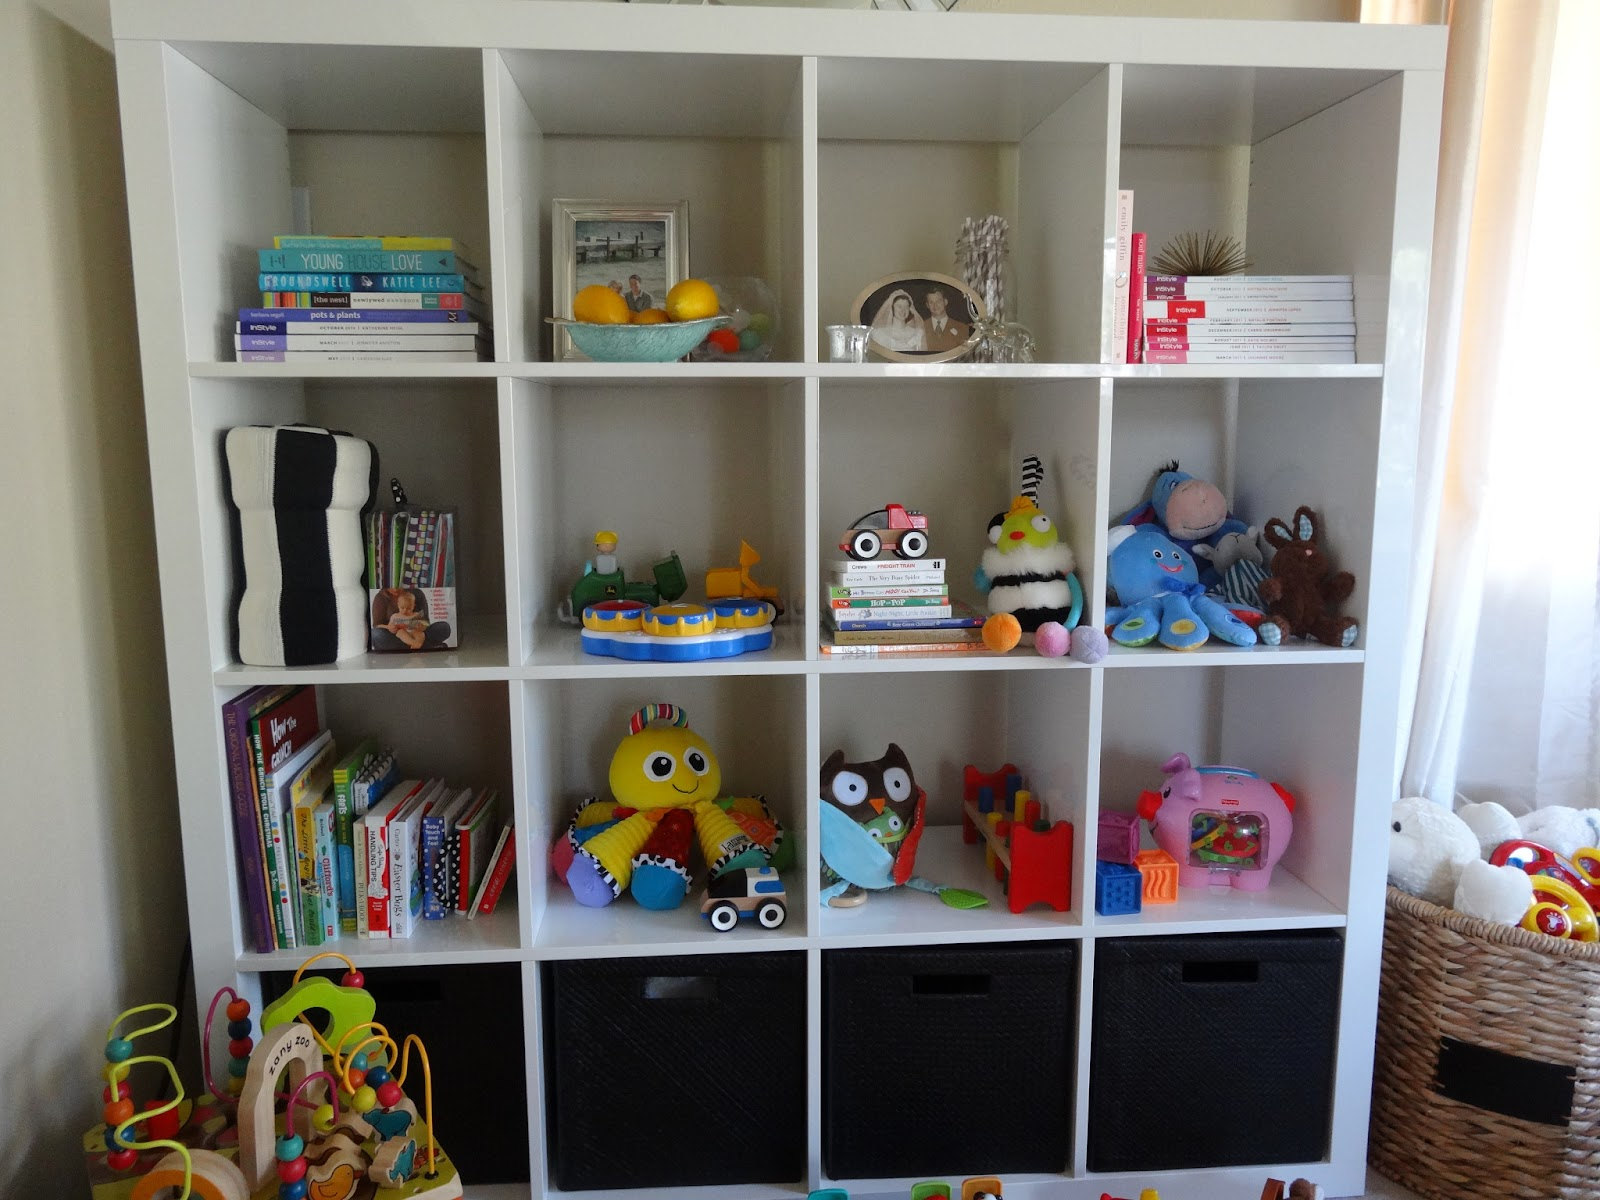 1000 images about tildy and archie 39 s room on pinterest built in bunks swings and toy shelves - Toy shelves ikea ...